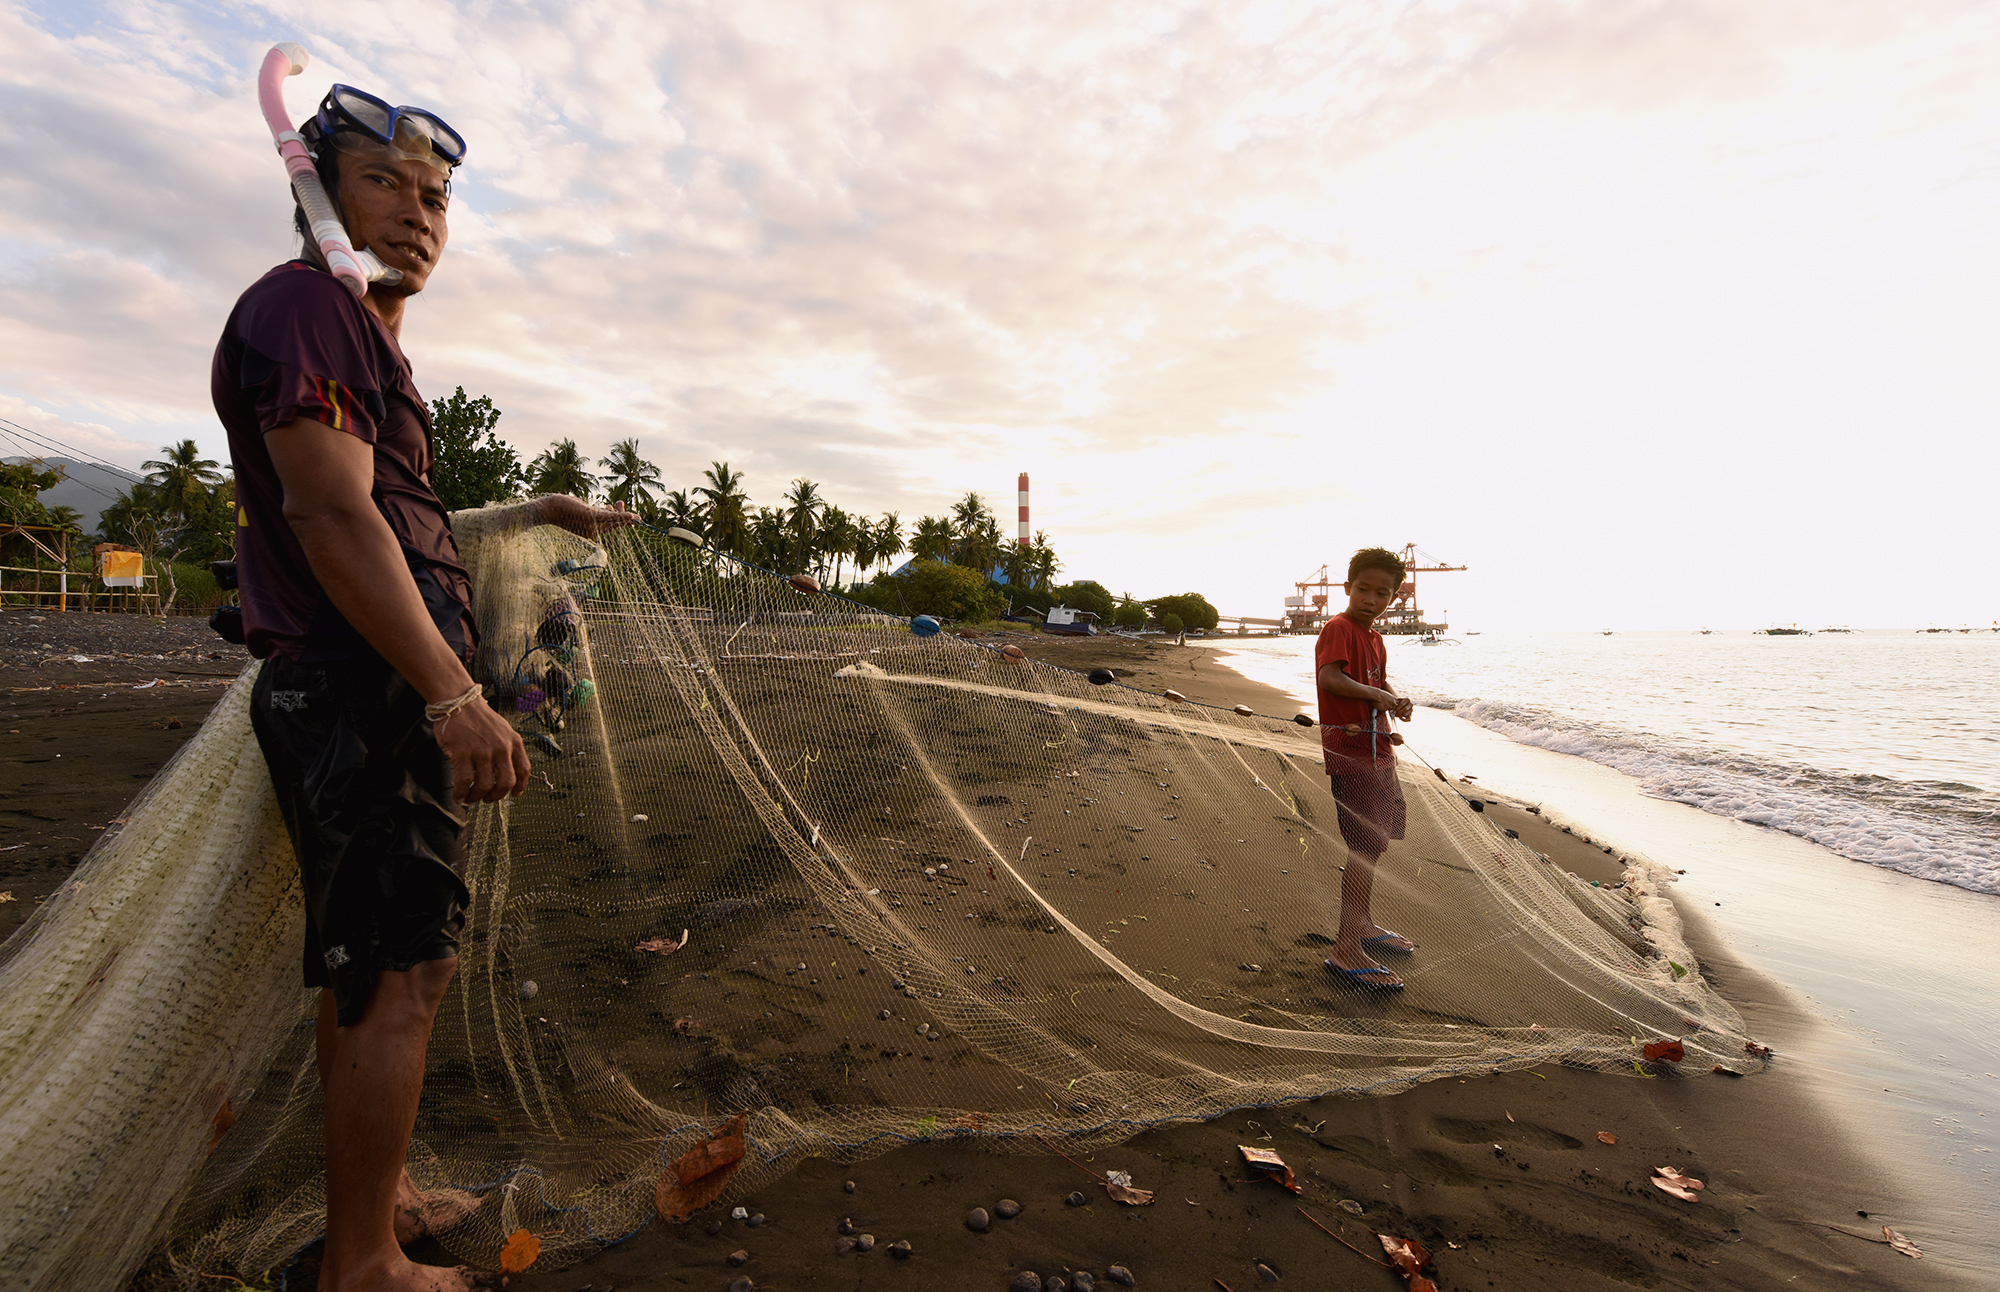 A fisher and his son on Celukan Bawang beach near the power plant (Image: Ade Dani)